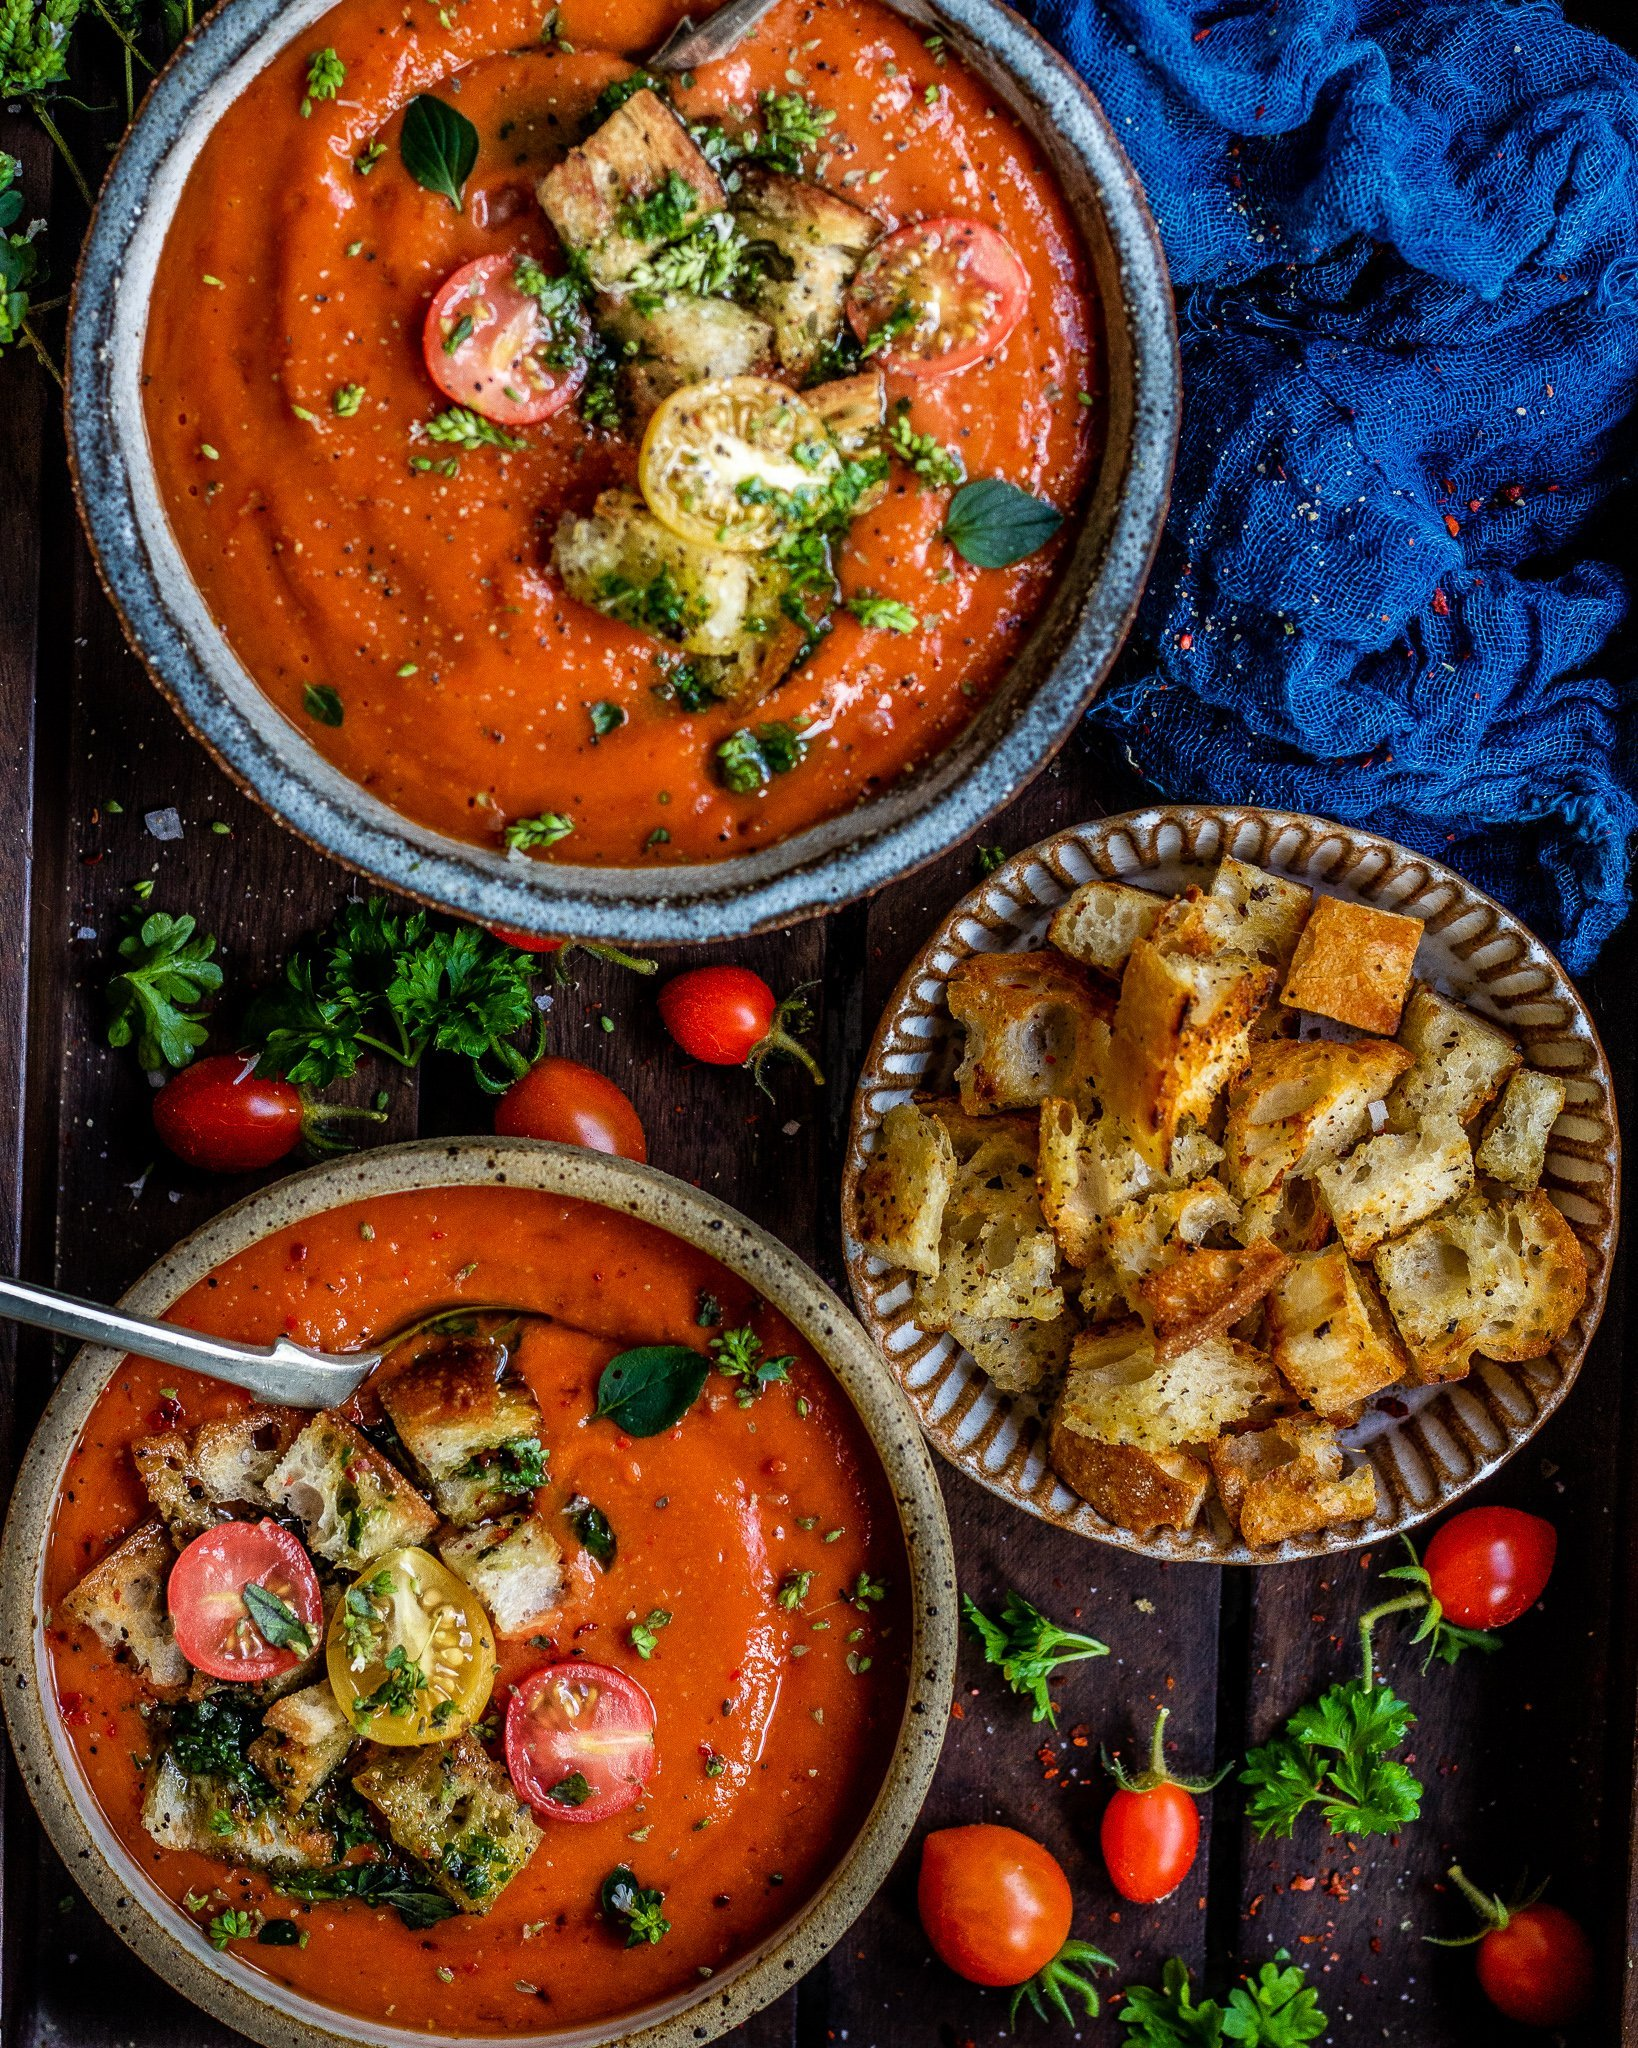 Oven Roasted Pepper & Tomato Soup